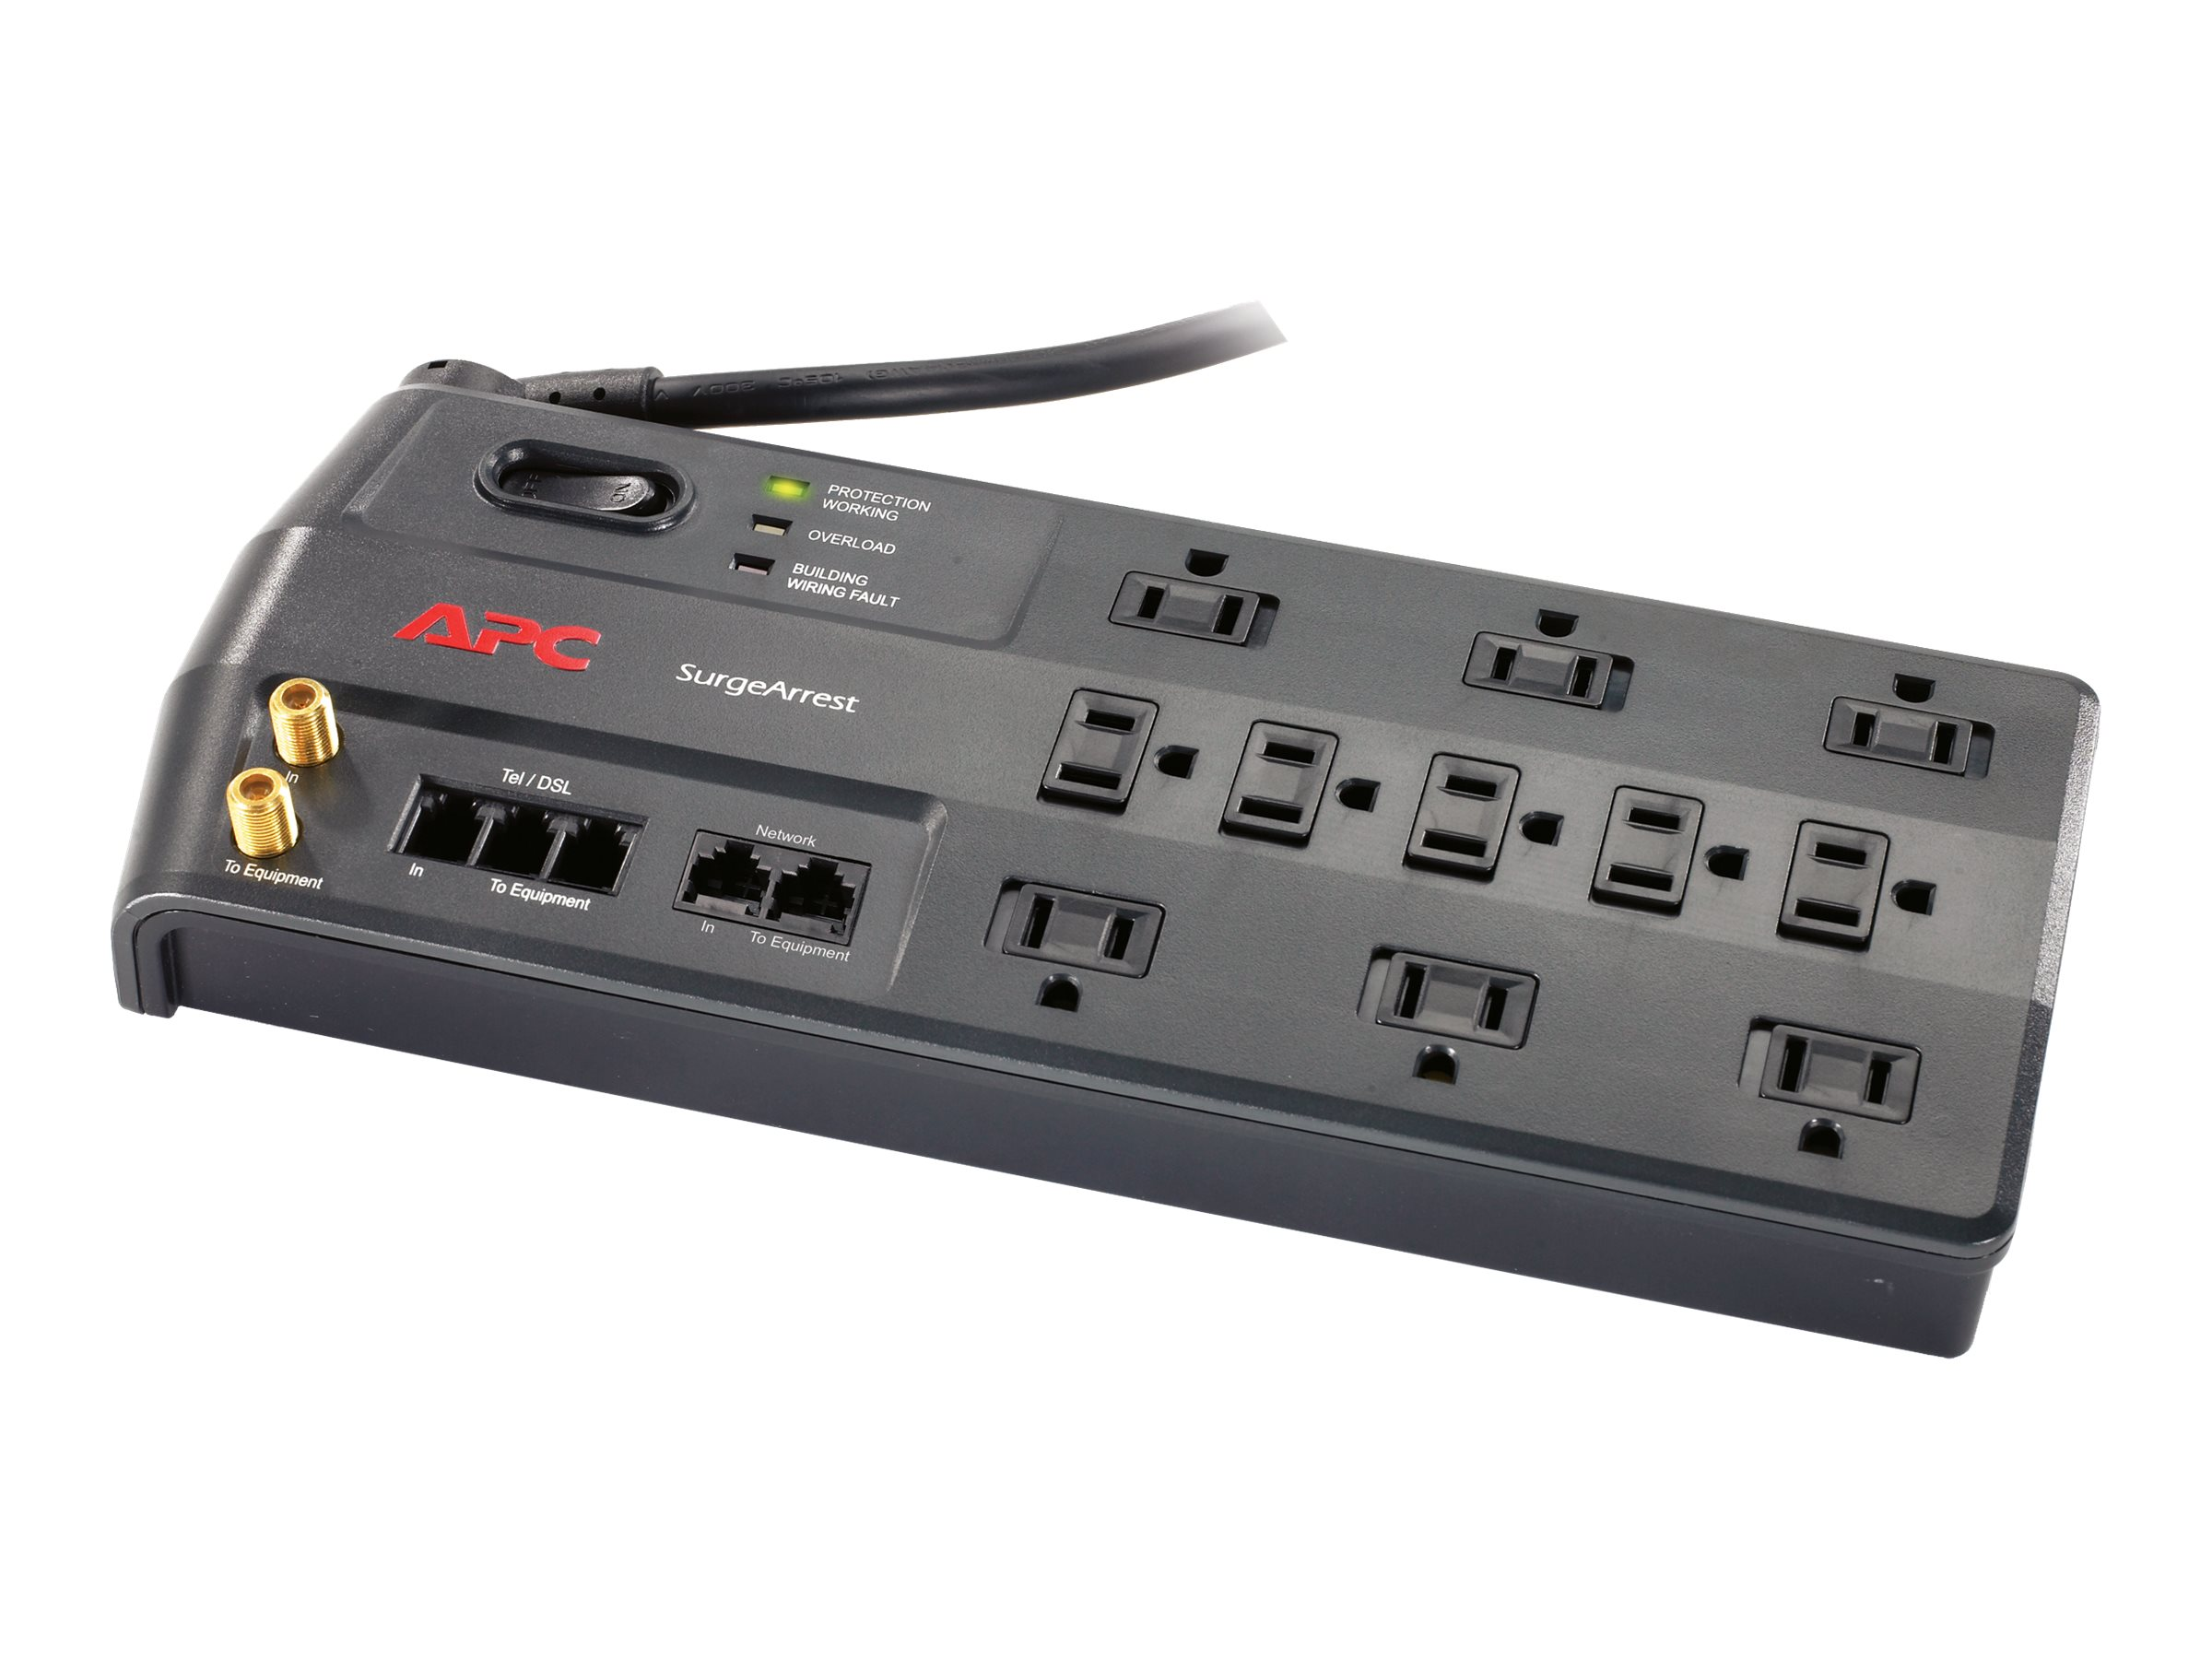 APC Performance SurgeArrest 3020 Joules with Telephone Splitter, Coax, Network, 120V, (11) Outlets, P11VNT3